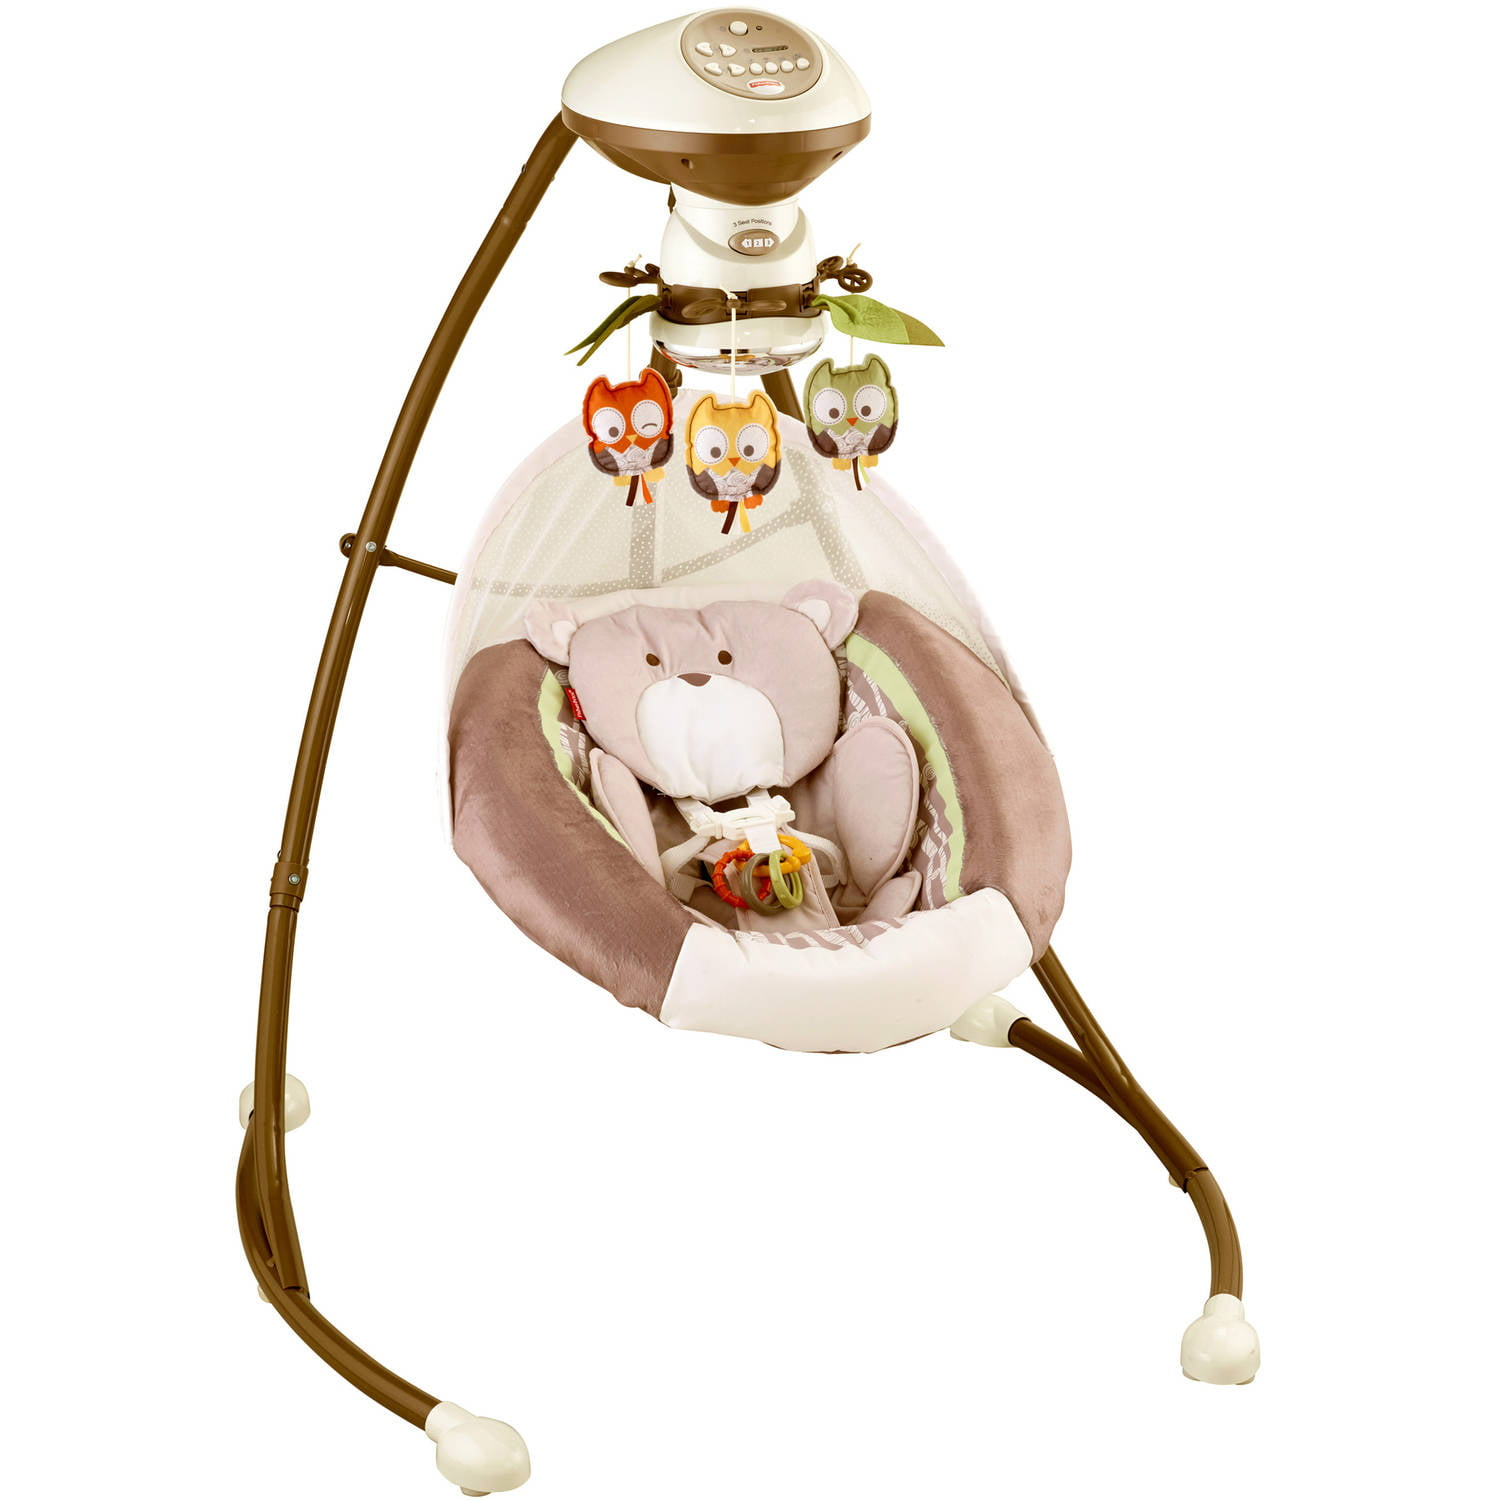 Fisher Price Cradle N Swing With 6 Speeds My Little Snugabear Walmart Com